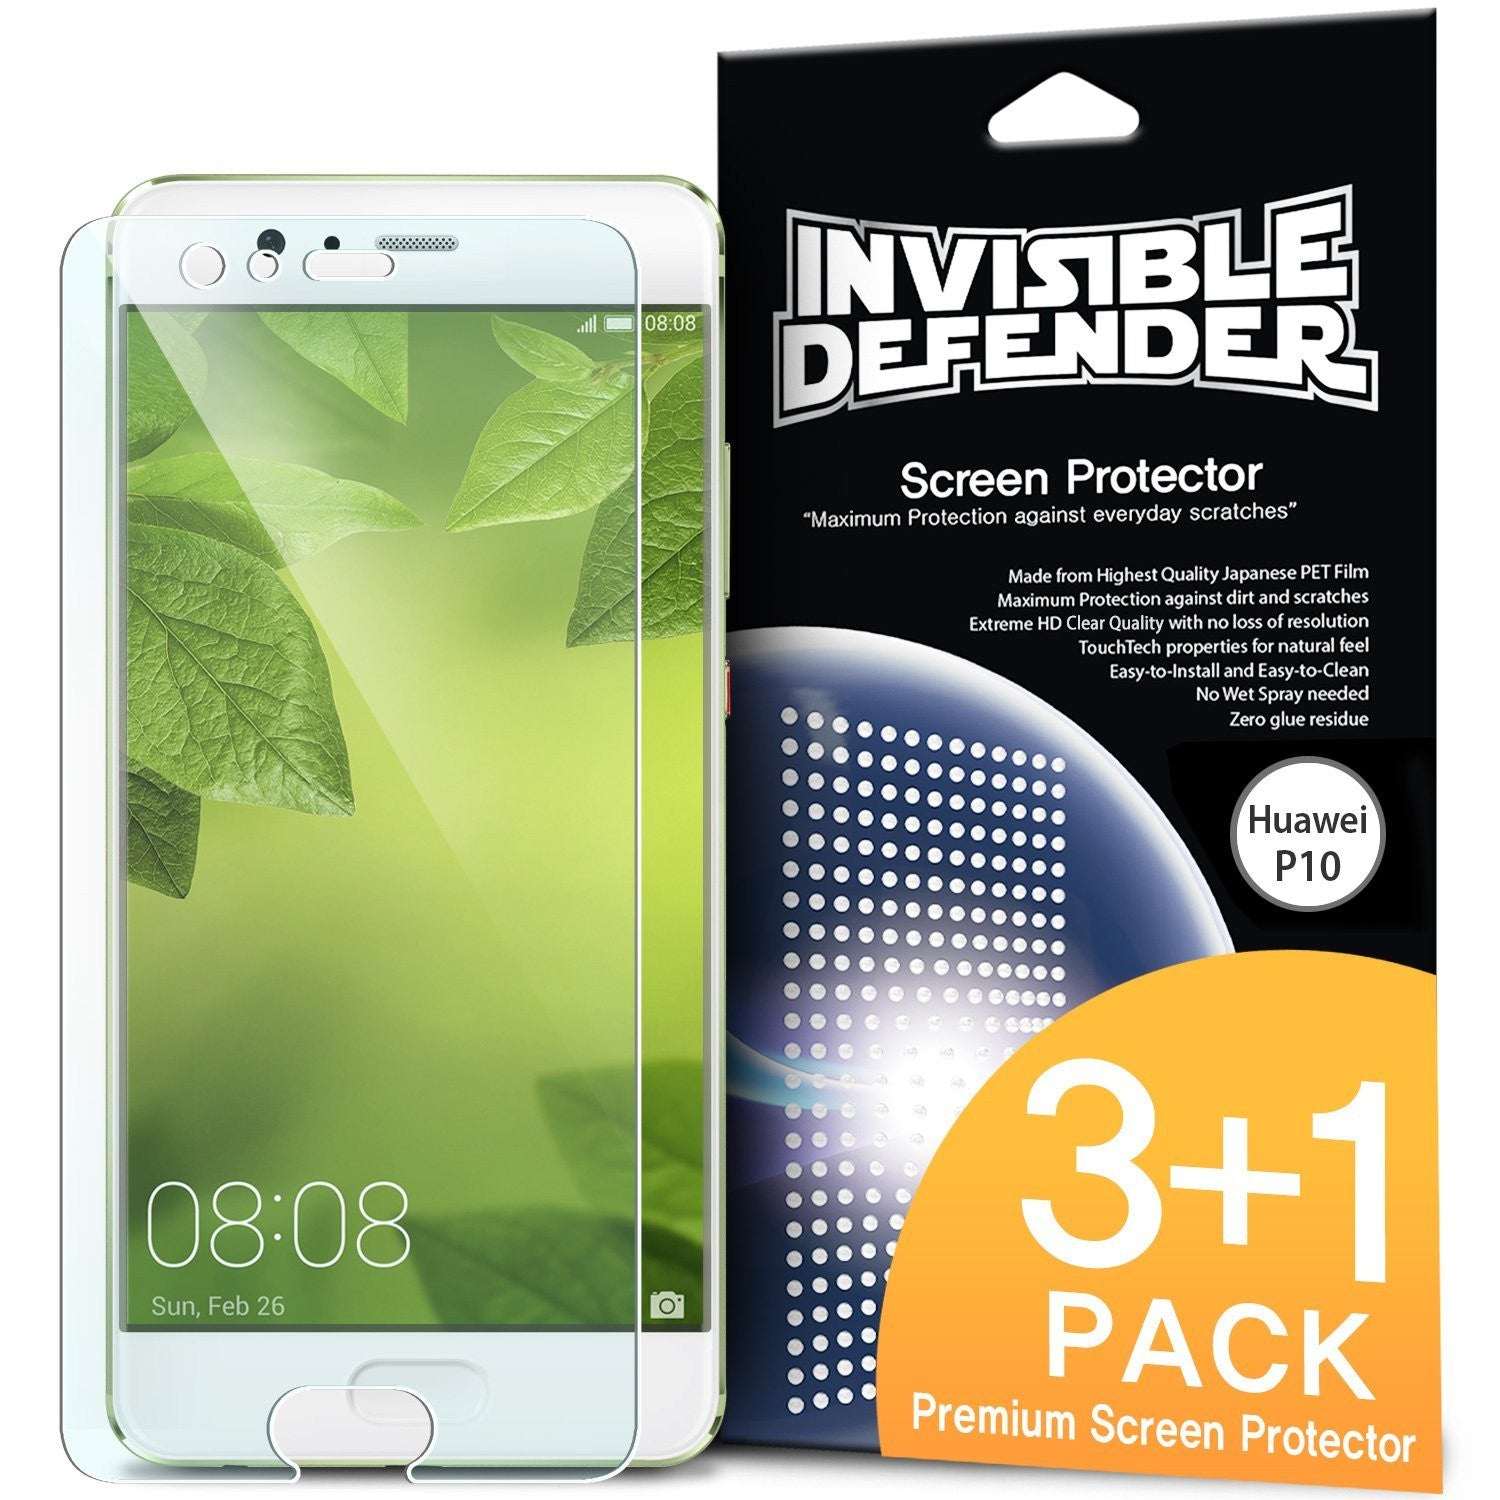 huawei p10 ringke invisible defender 4 pack hd clearness screen protector